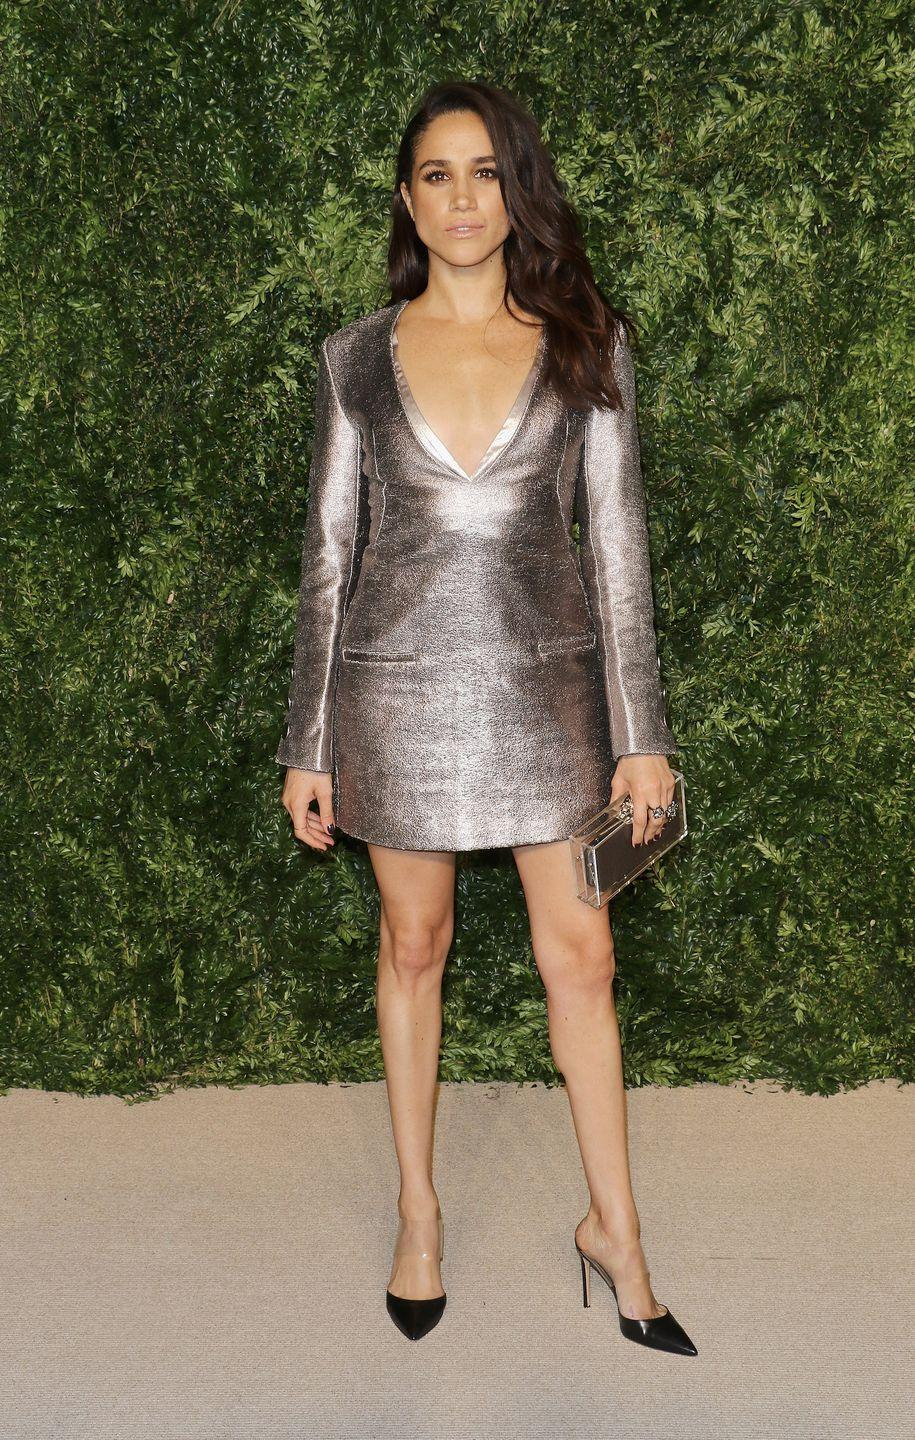 <p>This metallic mini is by one of Meghan's favorite designers Misha Nonoo for the 12th annual CFDA/Vogue Fashion Fund Awards in November 2015.</p>